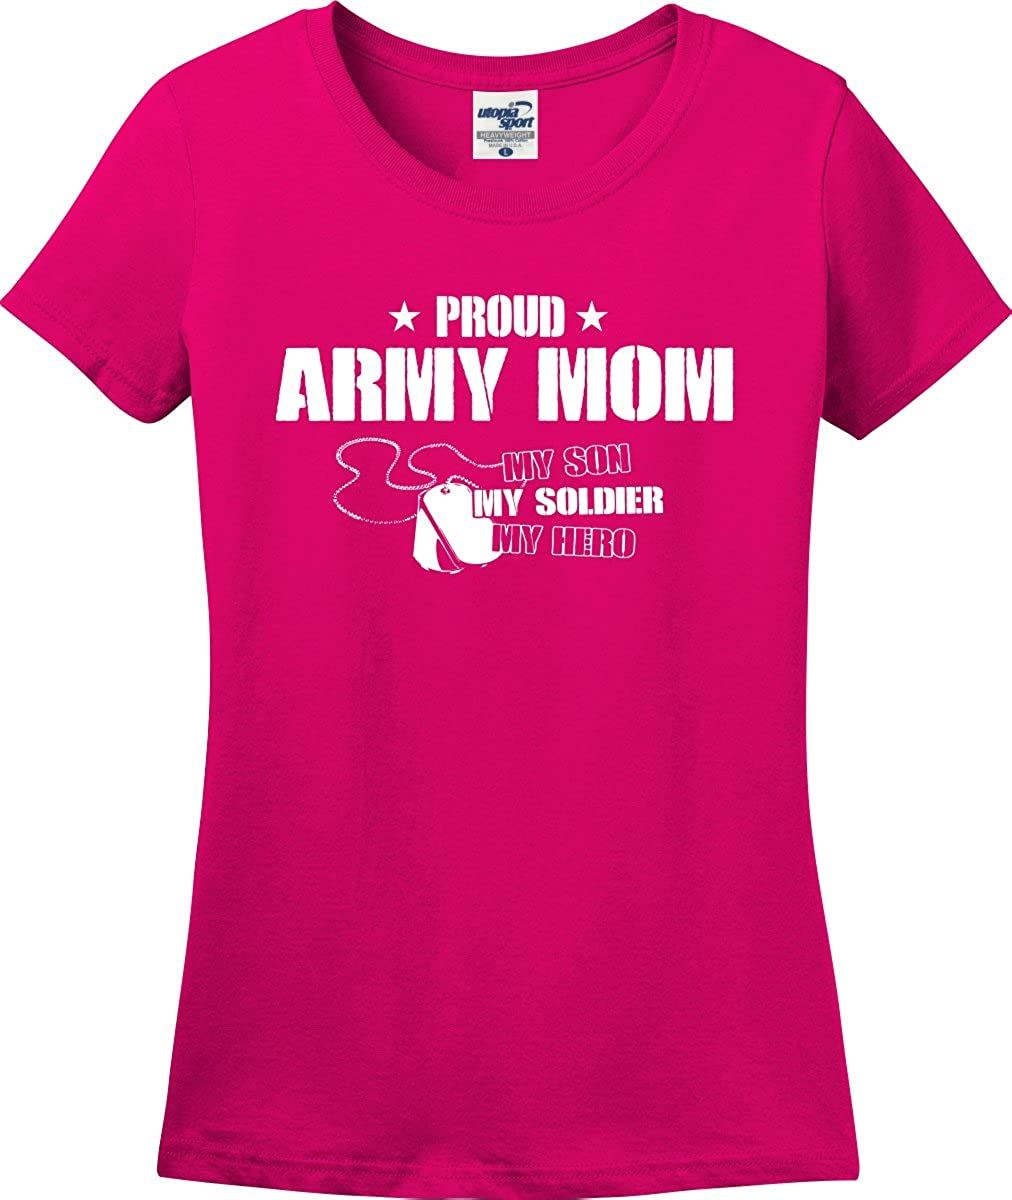 S-3X Utopia Proud Army Mom My Son Soldier Hero Ladies T-Shirt